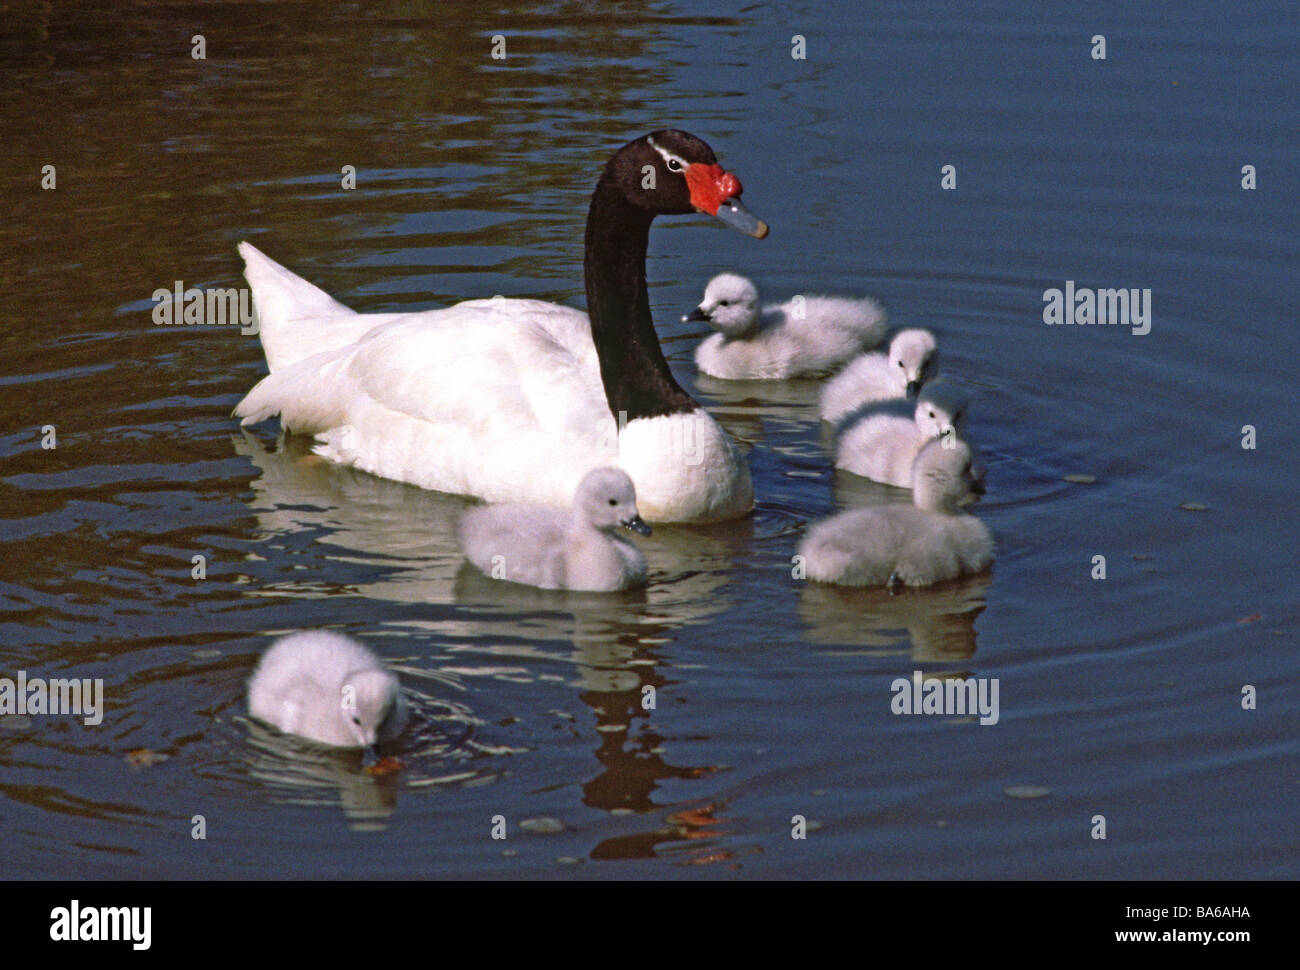 Female Black-necked Swan on the water with six downy cygnets. - Stock Image